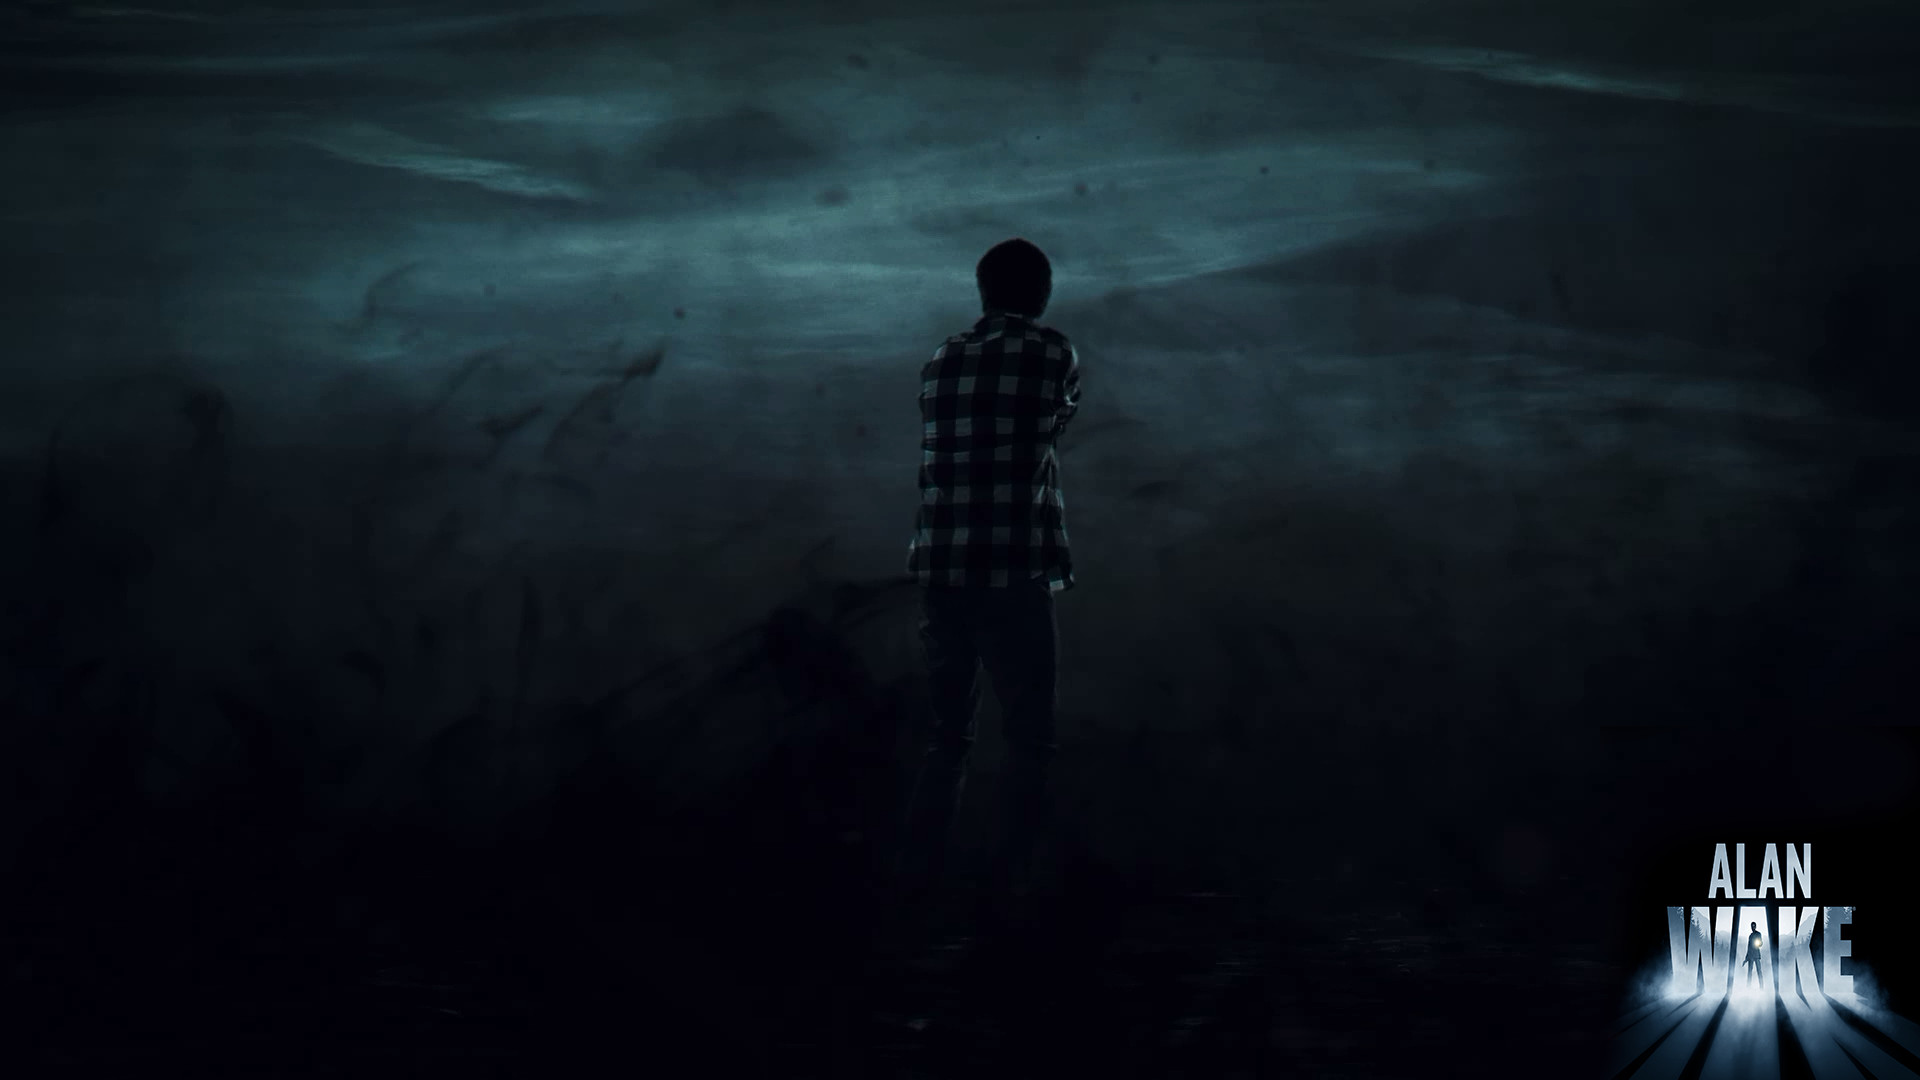 1920x1080 wallpaper.wiki-Full-HD-Alan-Wake-Wallpaper-PIC-